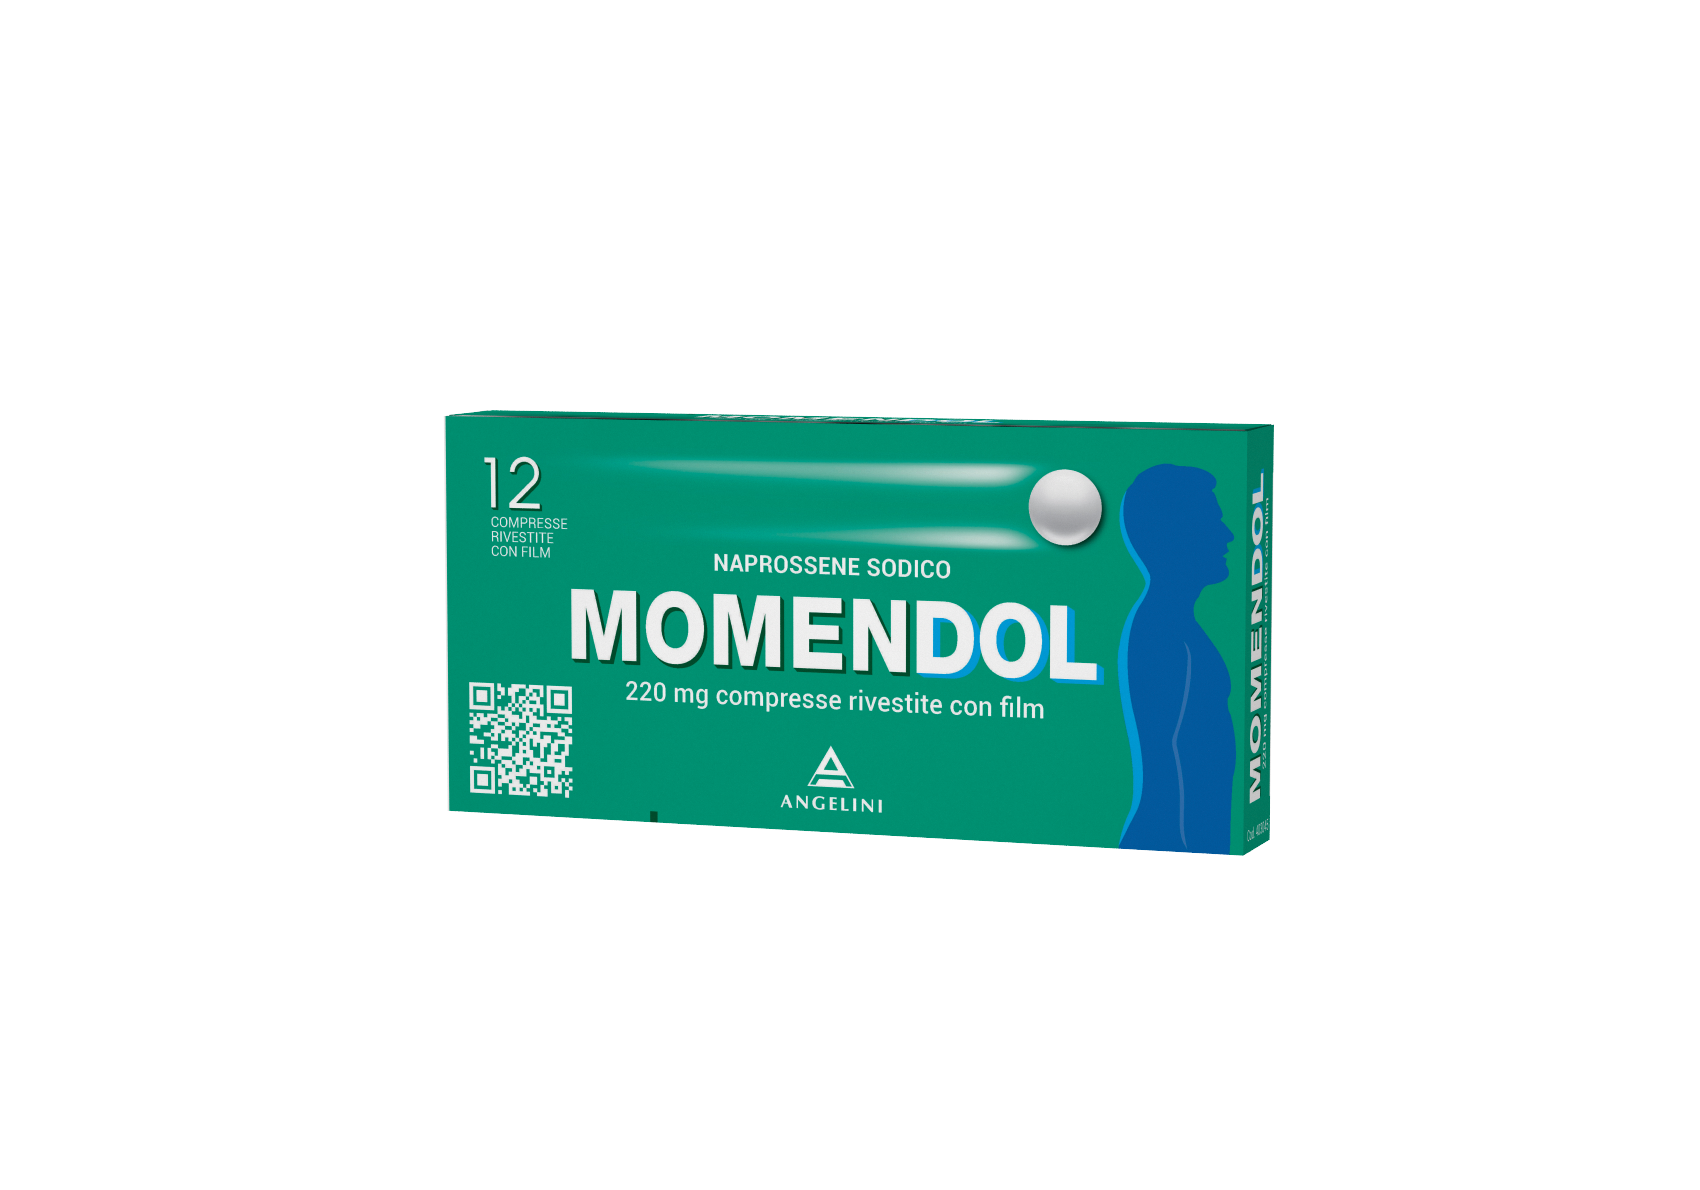 MOMENDOL Naprossene Sodico 220mg - 12 Compresse Rivestite - Farmapage.it